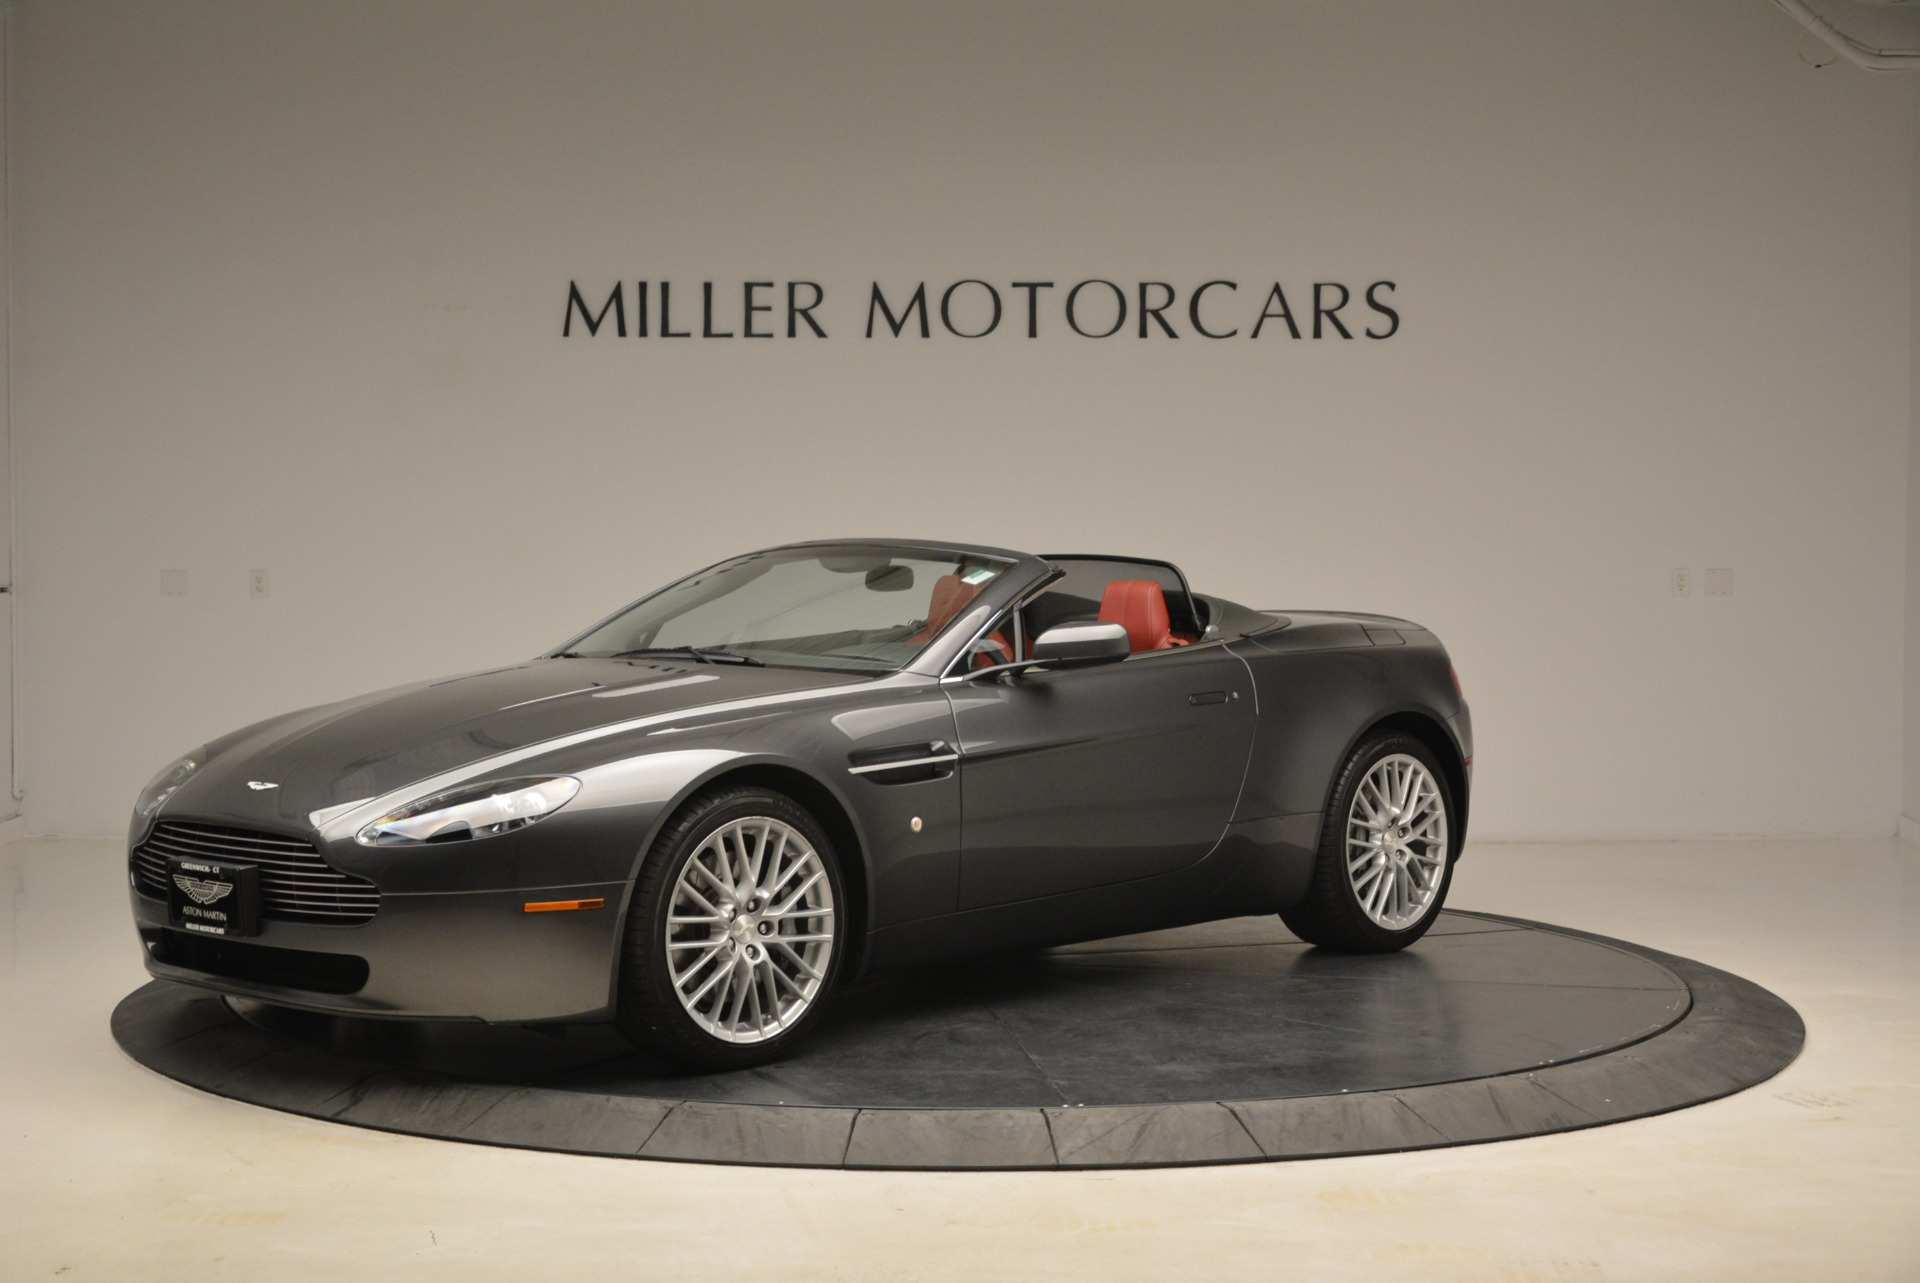 Used 2009 Aston Martin V8 Vantage Roadster For Sale In Westport, CT 2123_p2